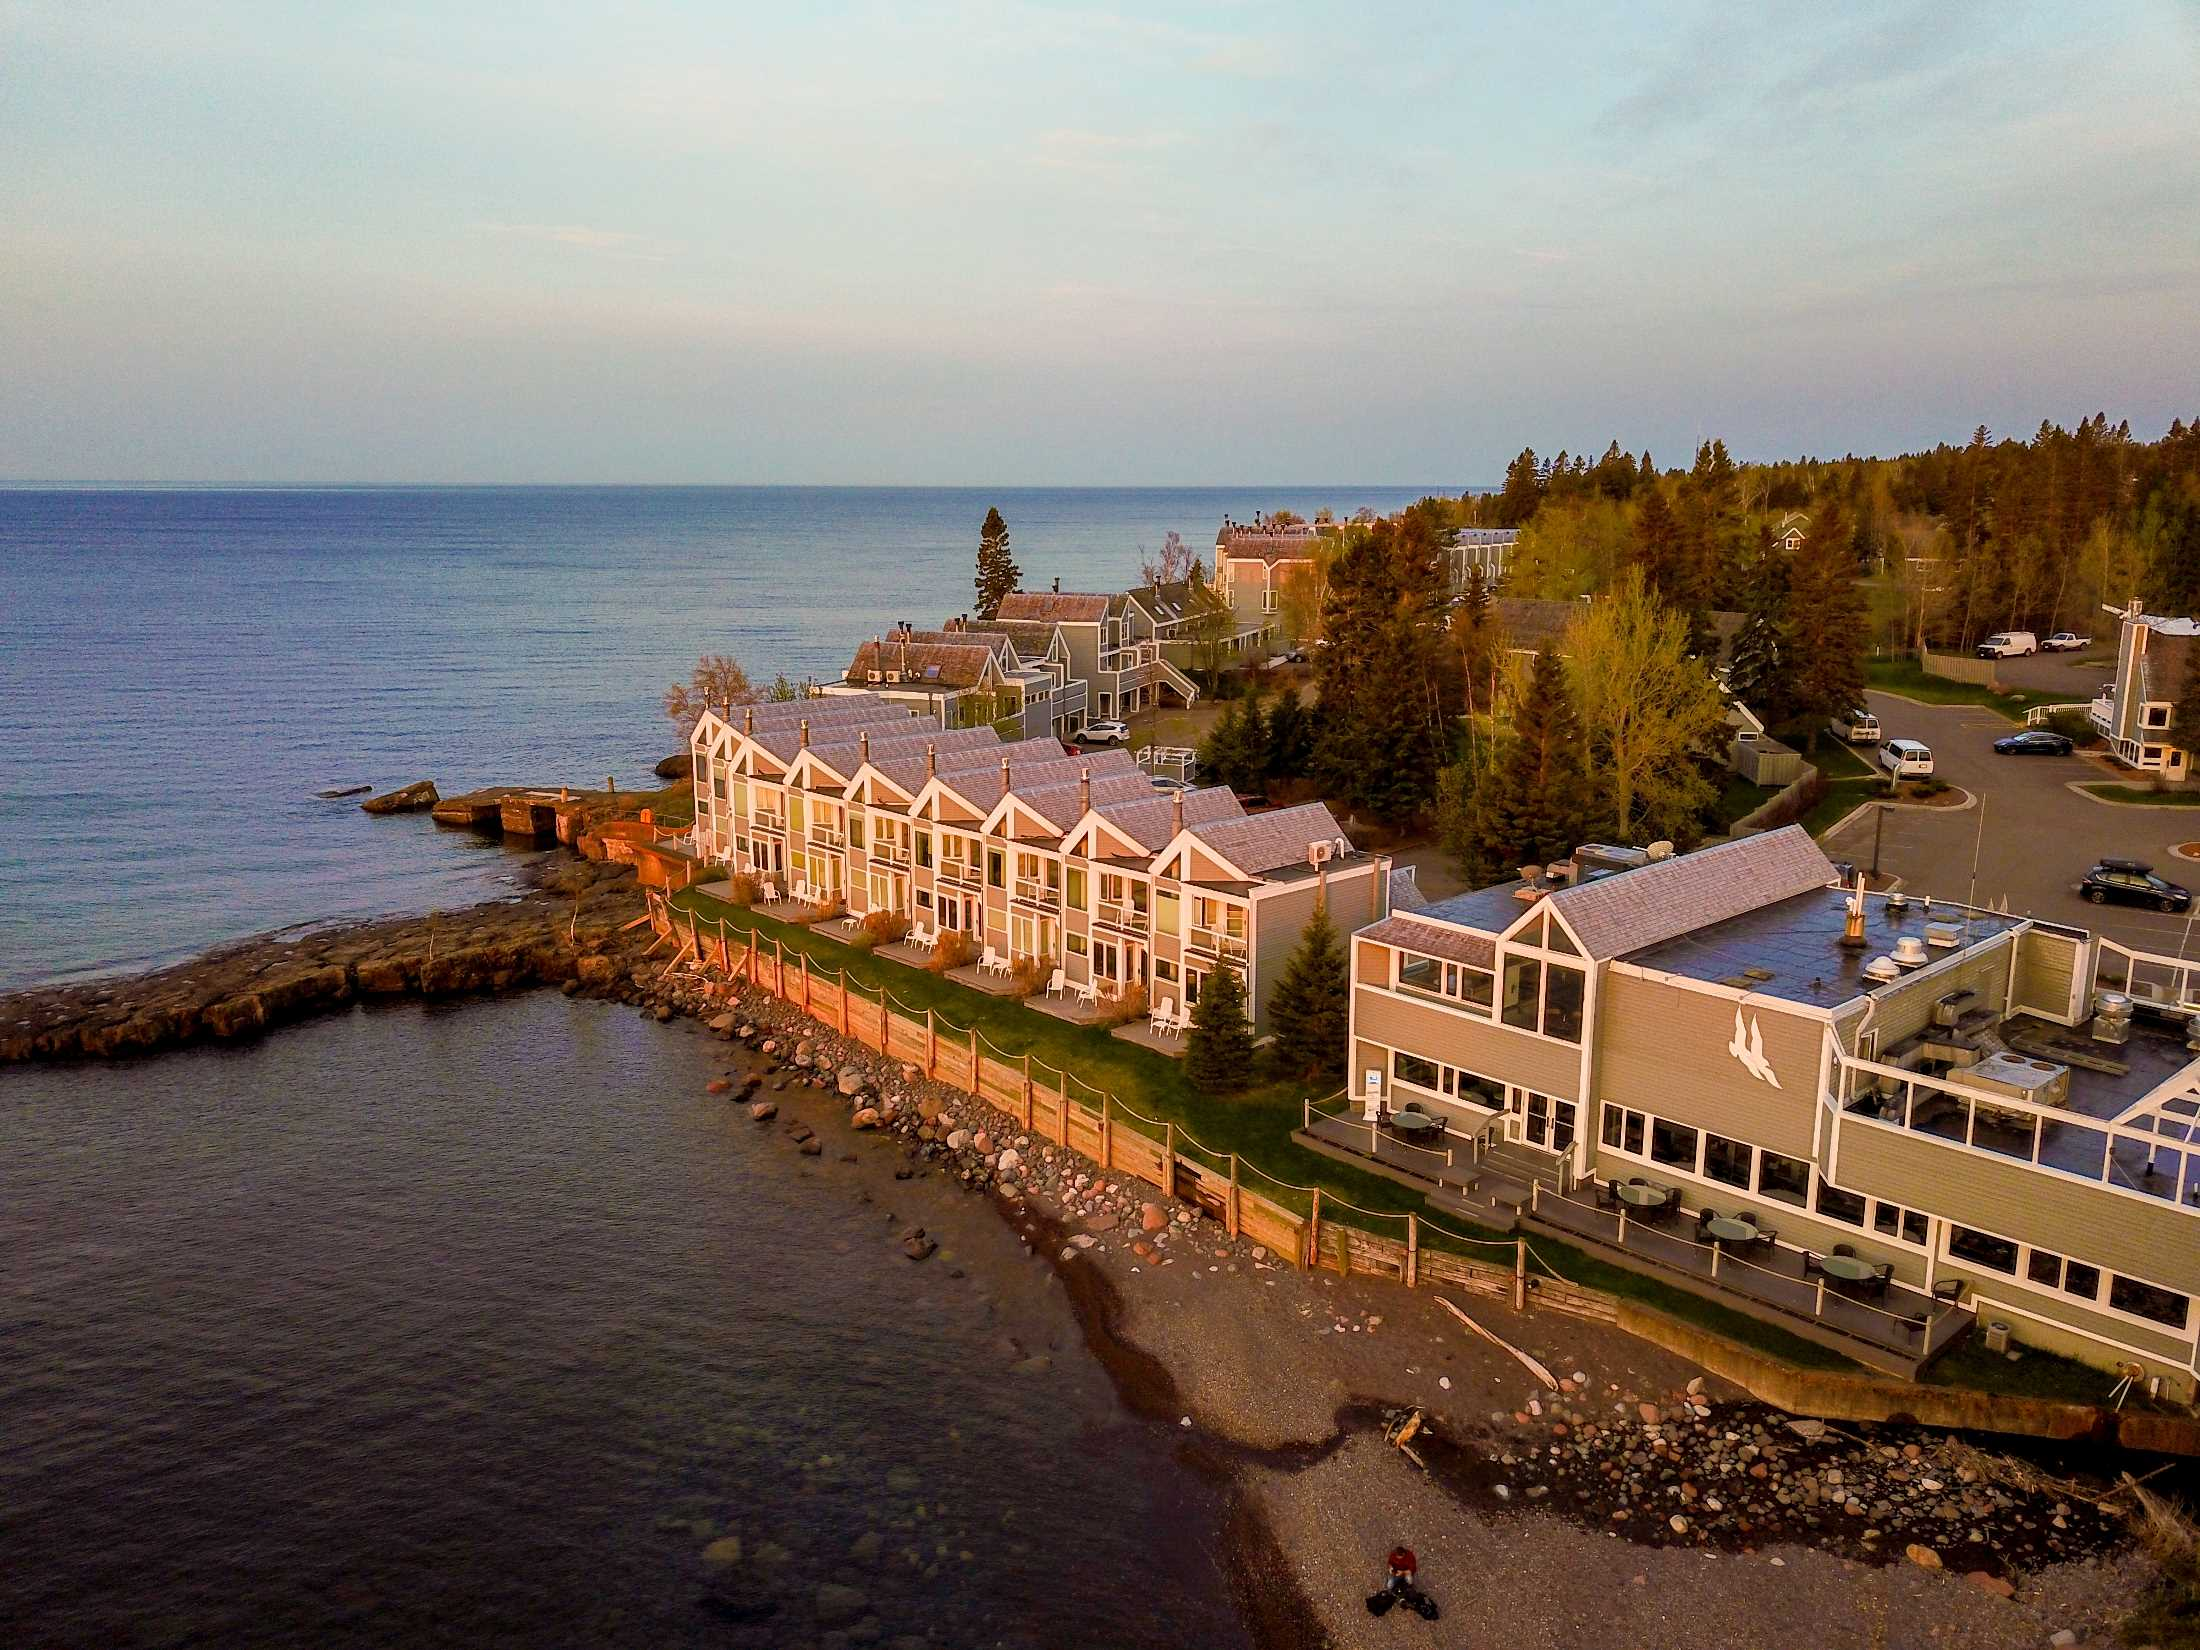 Bluefin Bay on Lake Superior Summer